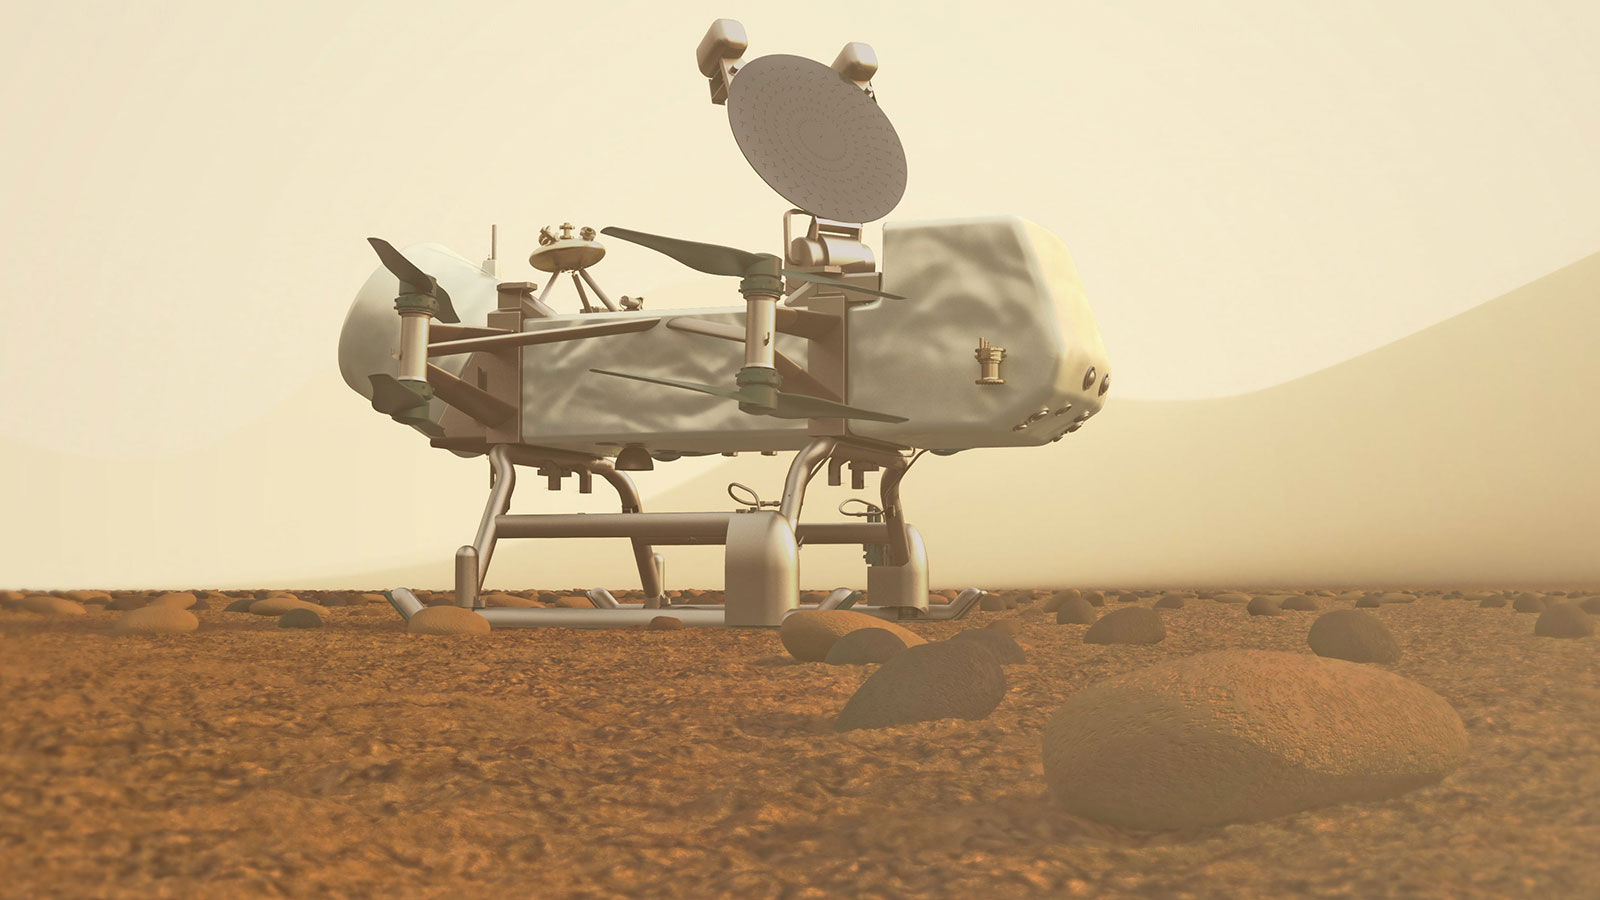 Artist's concept of rotorcraft drone on the orangish surface of Titan.